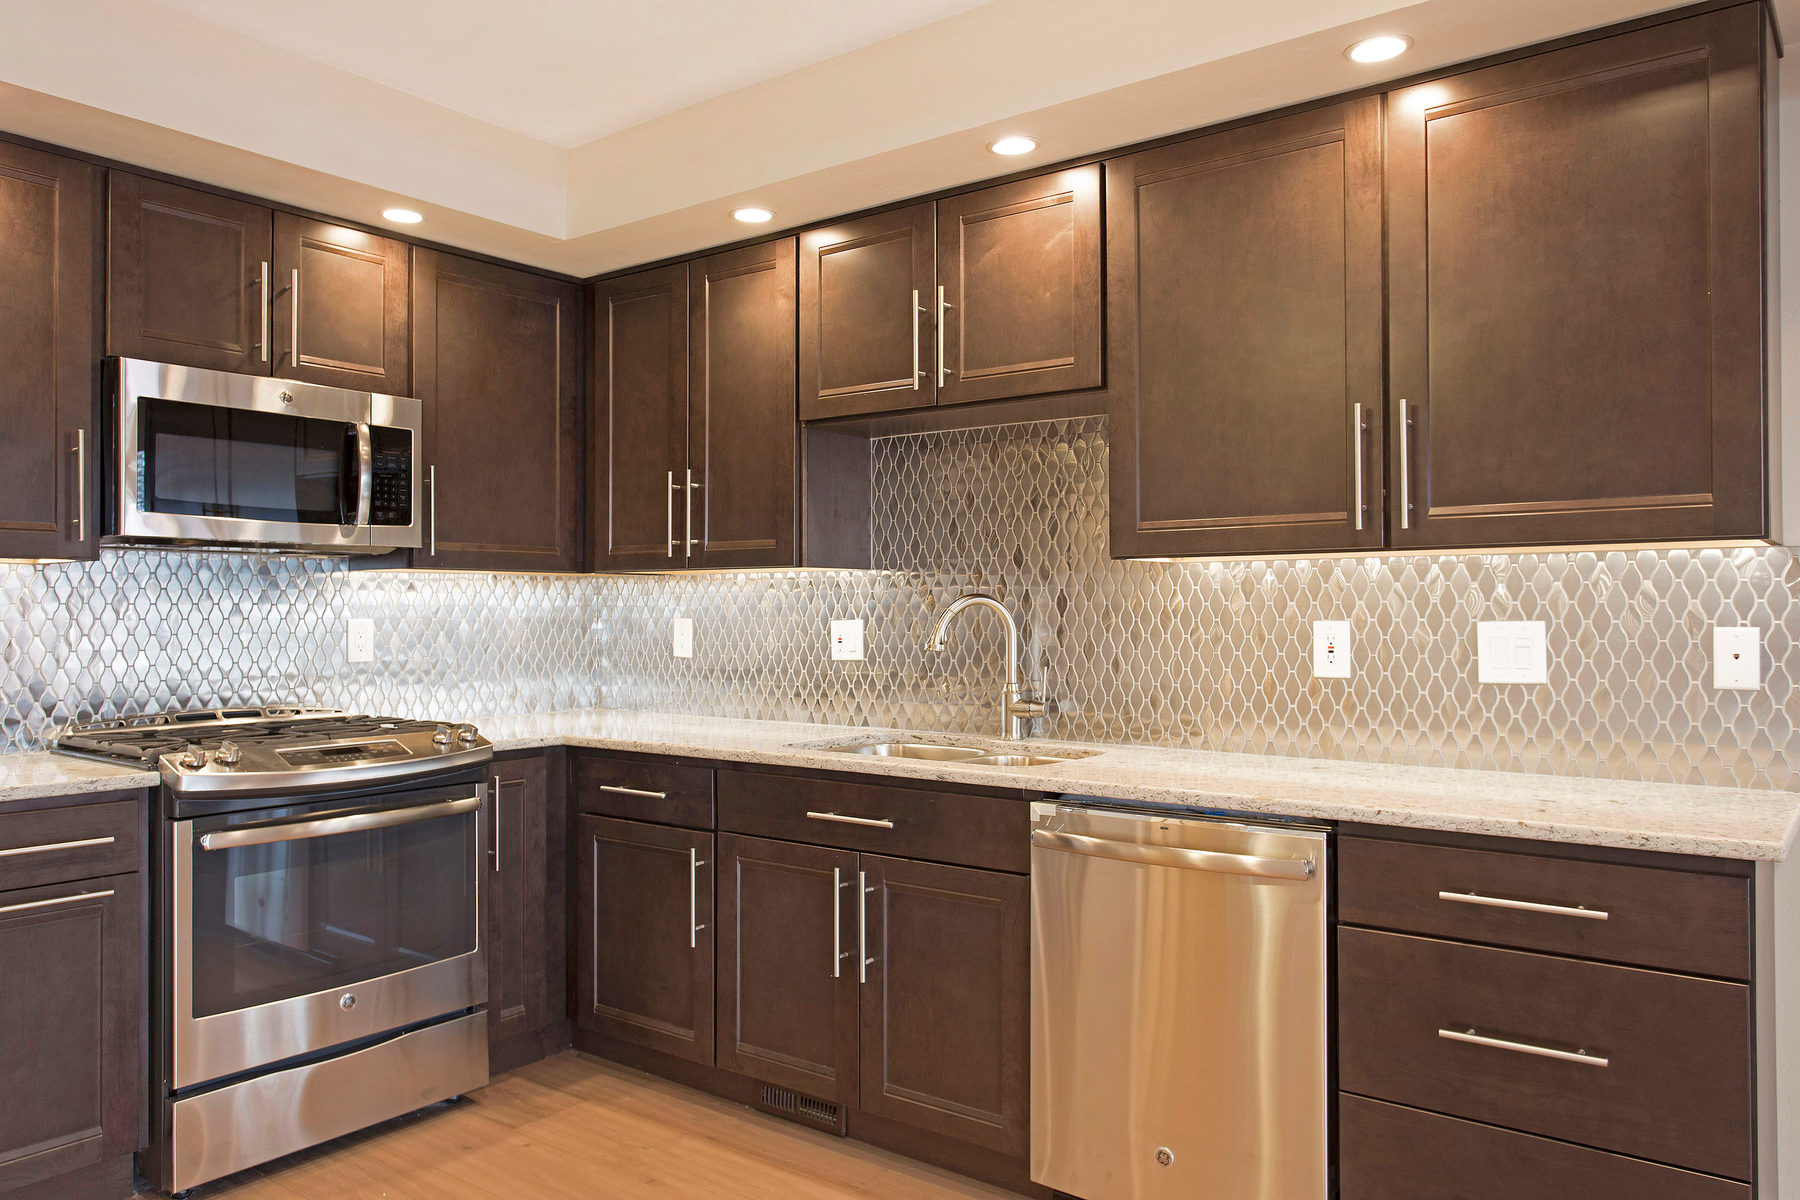 Single Family Home for Sale at Wonderful Remodel on Daly 62 Daly #A Park City, Utah 84060 United States